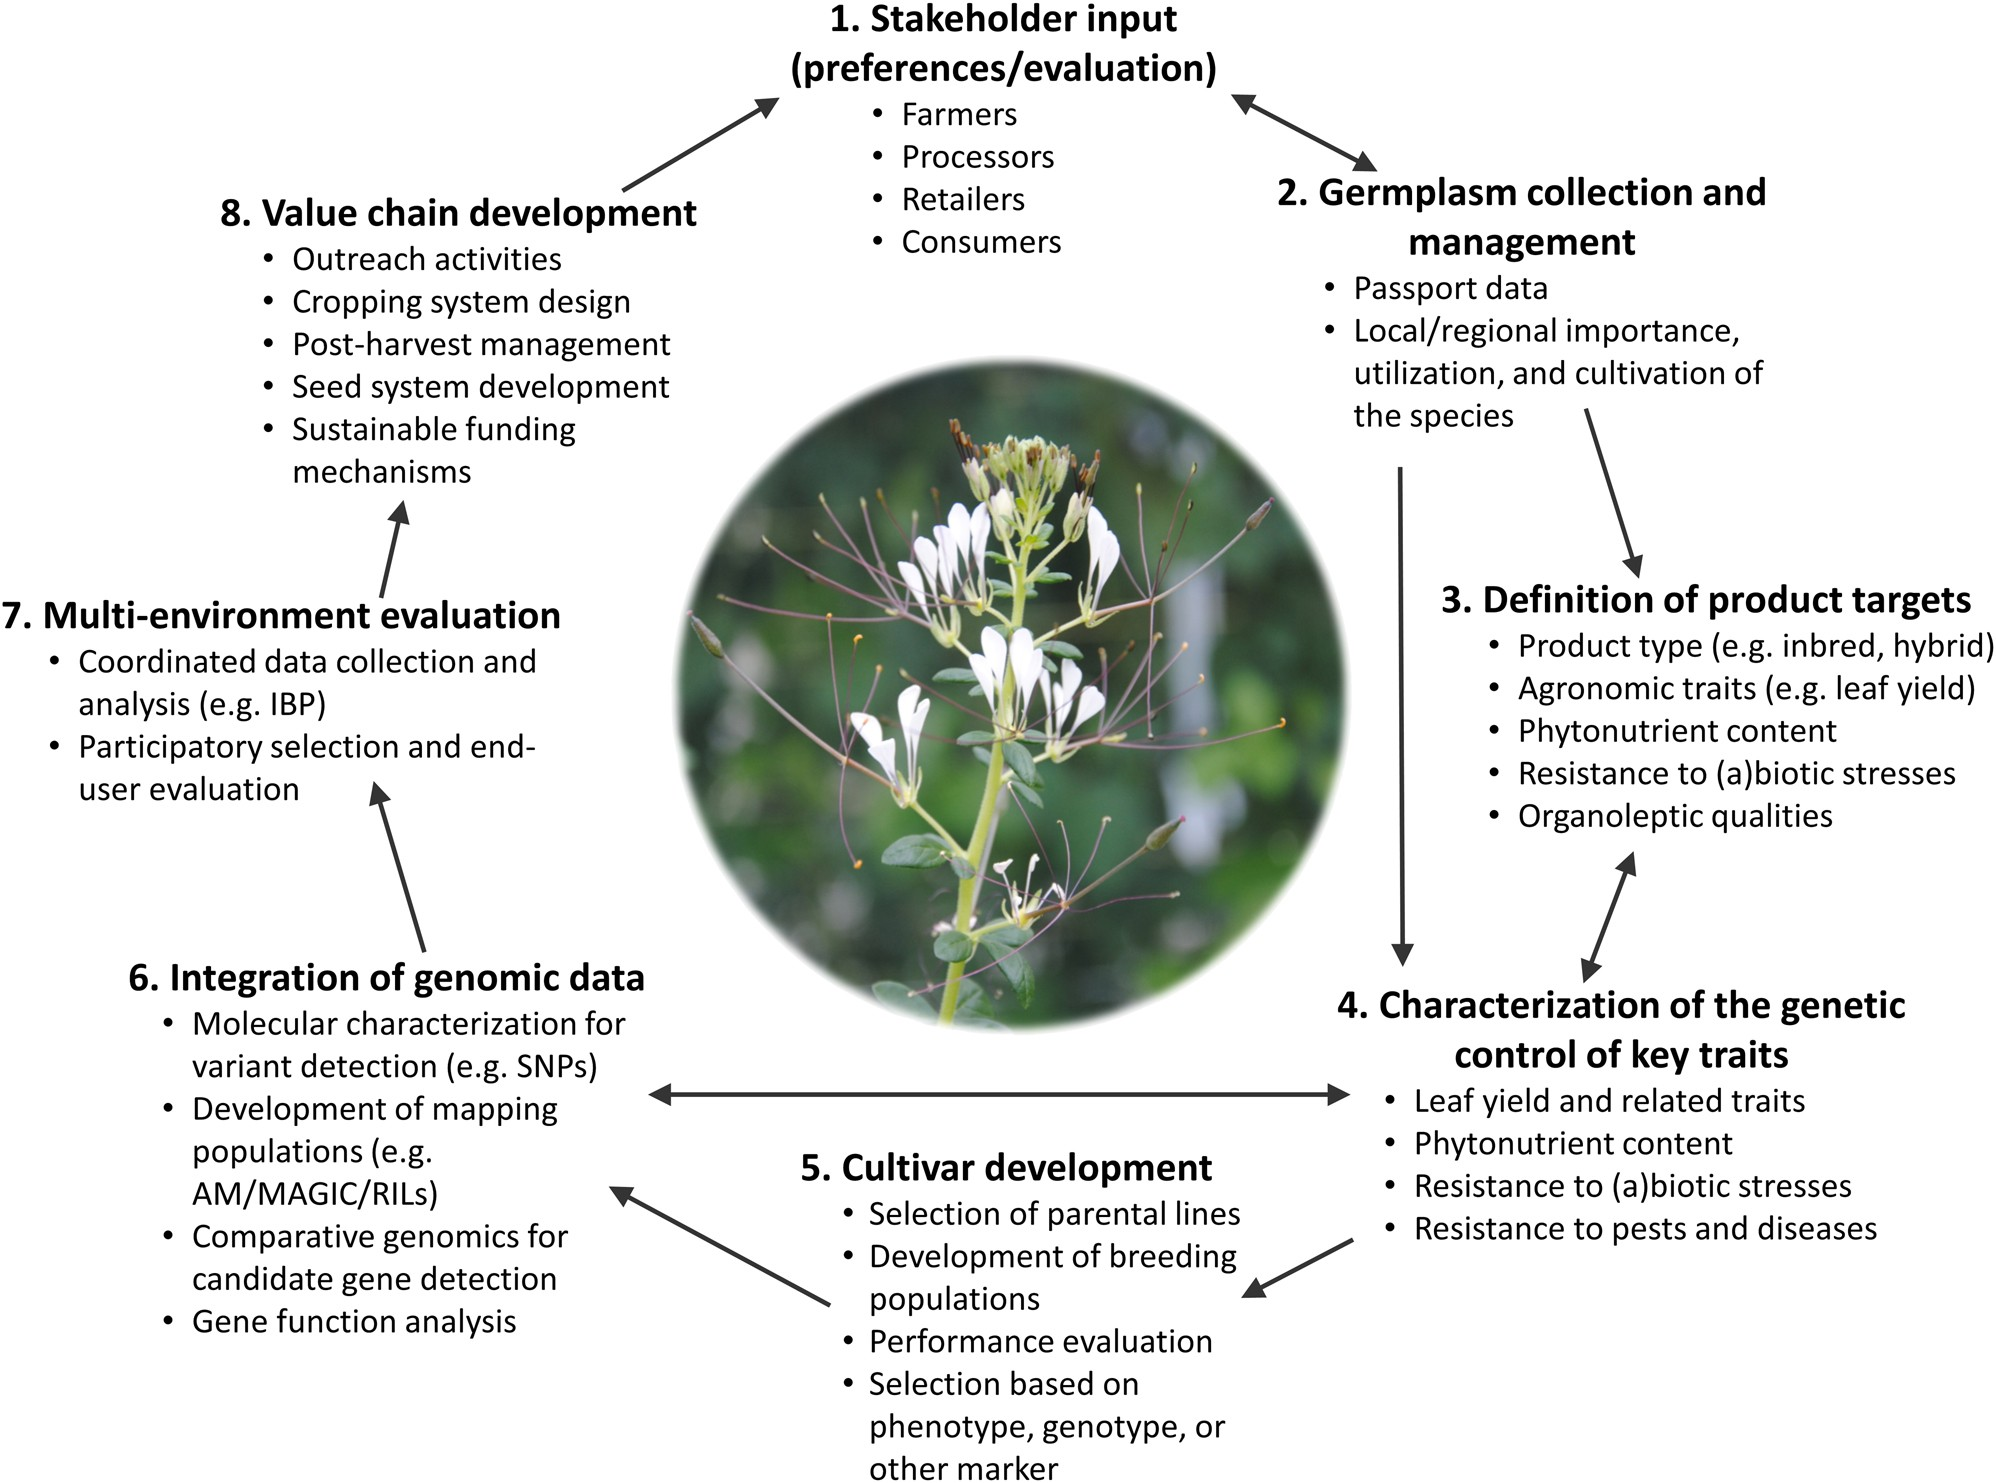 A roadmap for breeding orphan leafy vegetable species: a case study of  Gynandropsis gynandra (Cleomaceae) | Horticulture Research